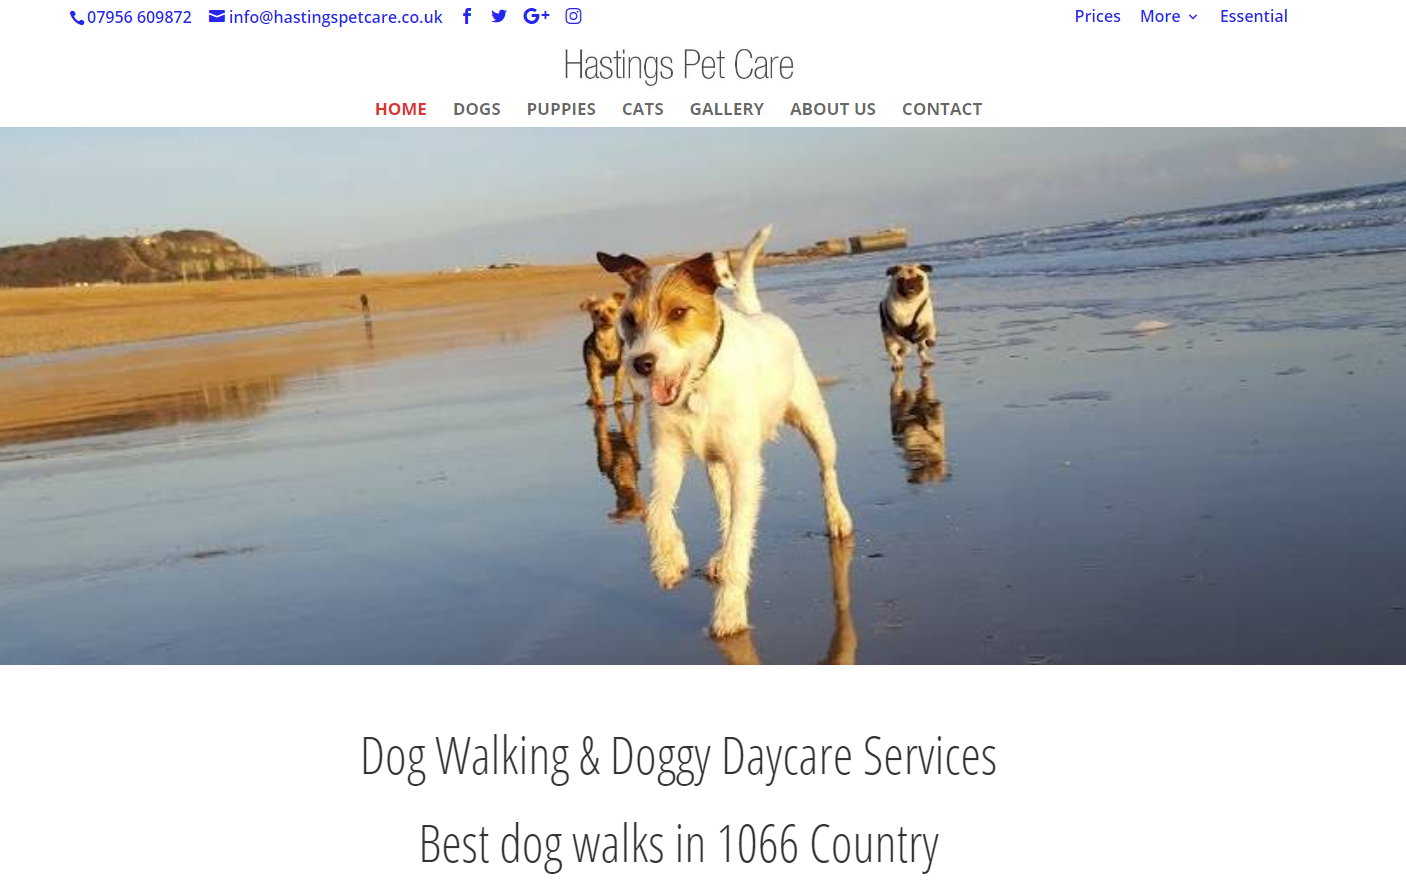 Hastings Pet Care